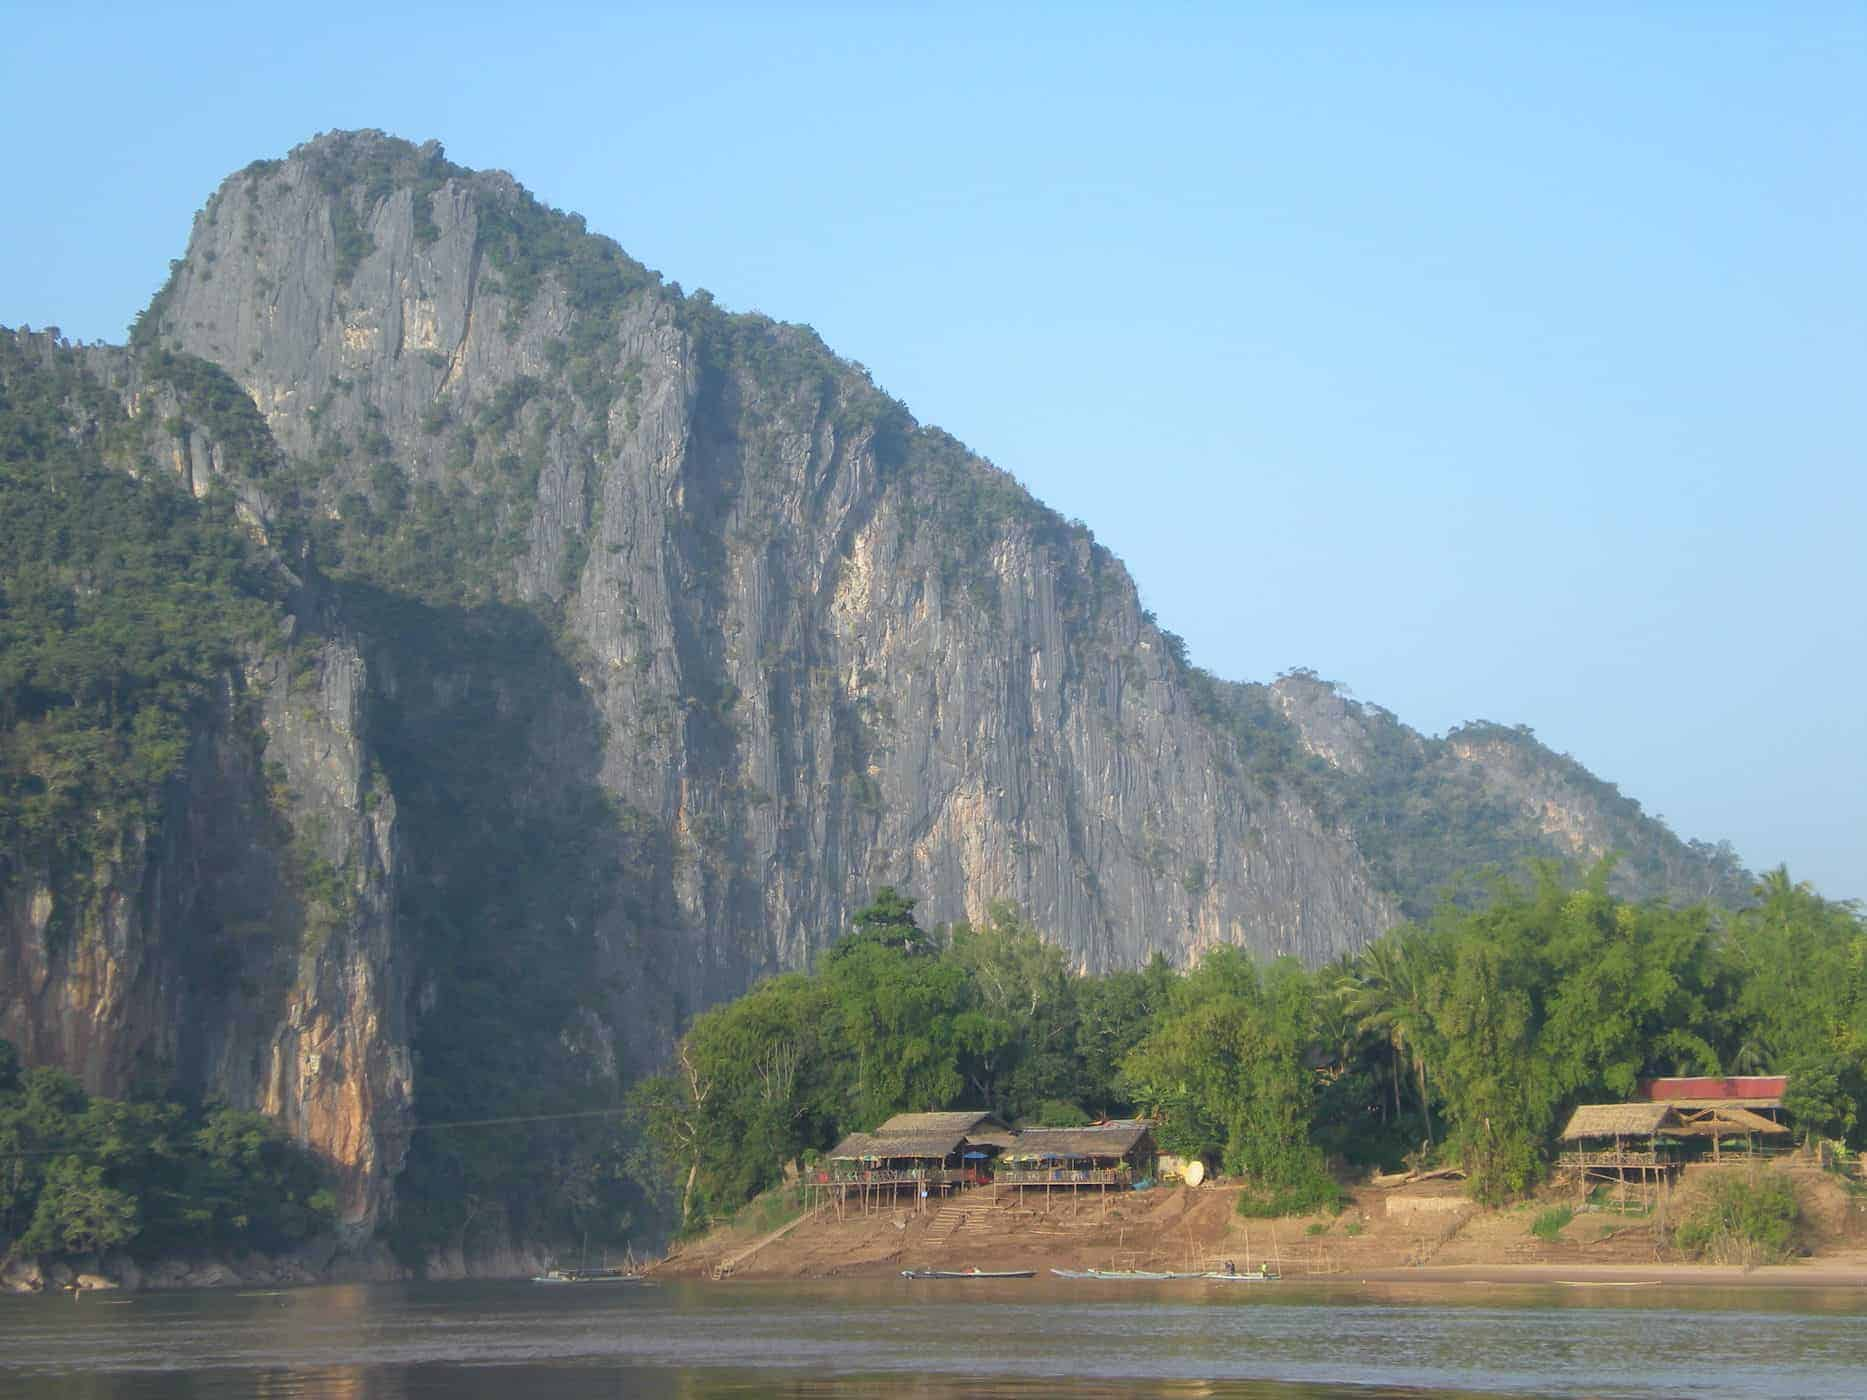 View from slow boat coming into Luang Prabang, Laos.